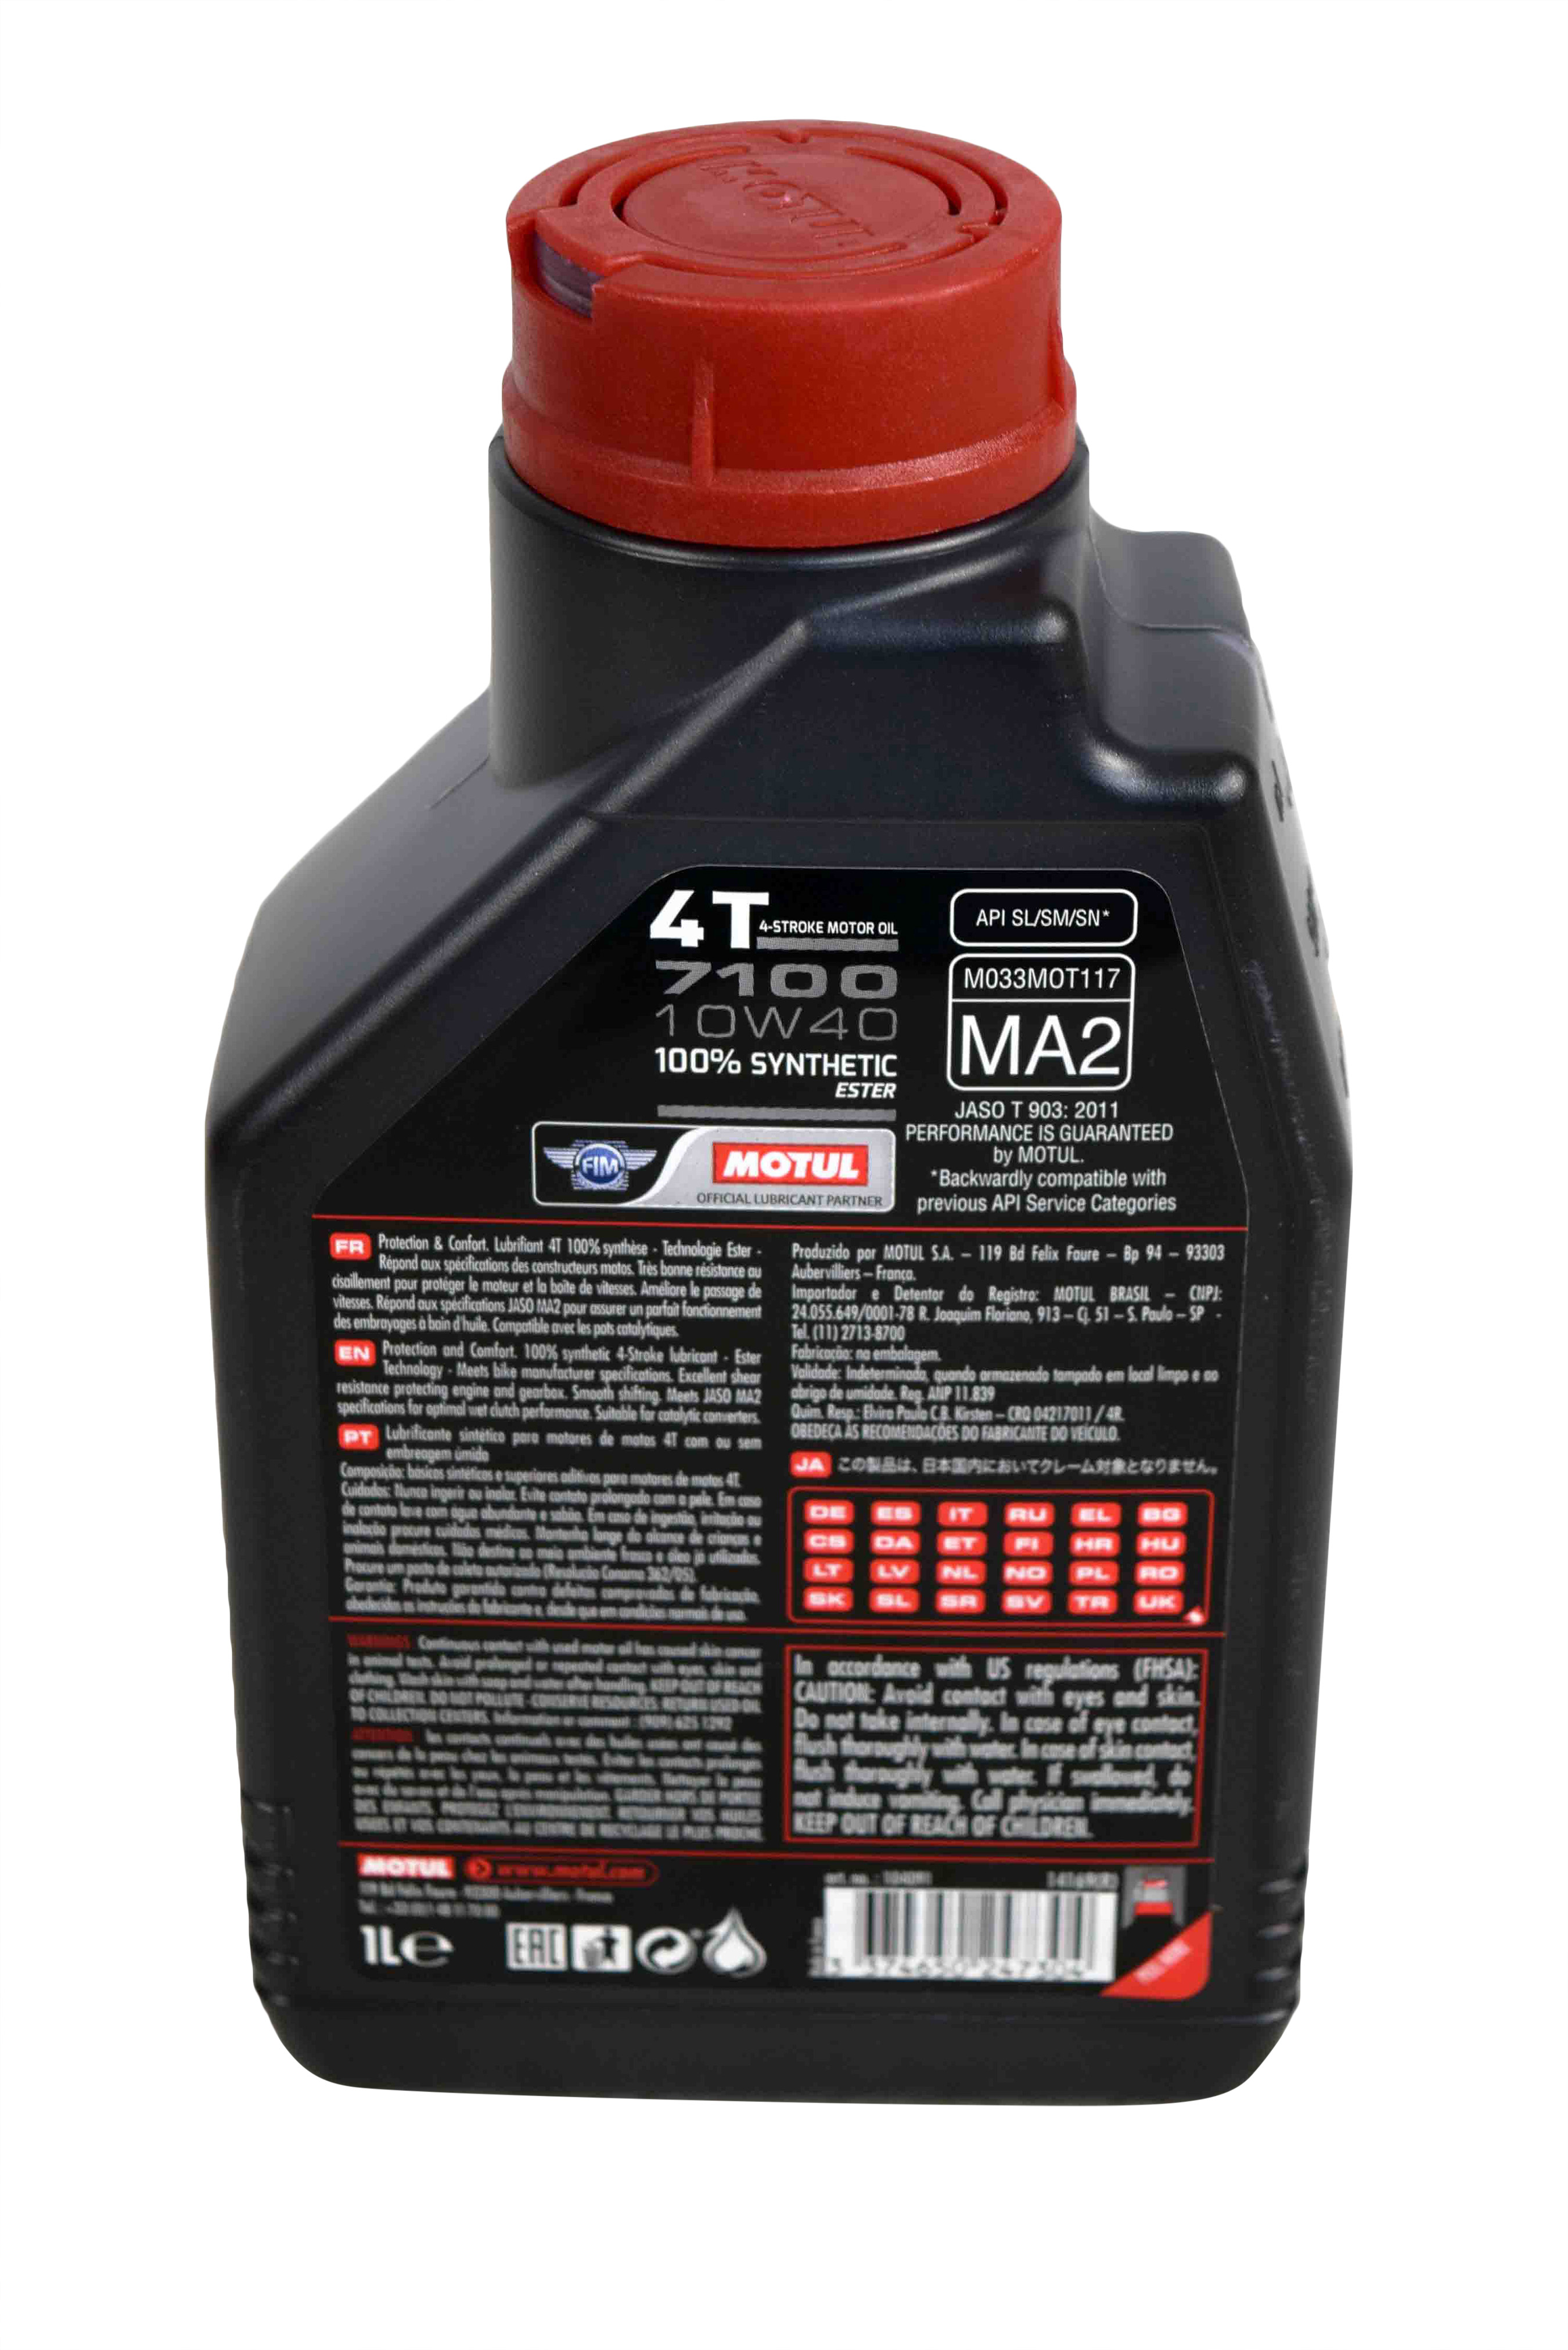 Motul-104091-7100-Ester-4T-Fully-Synthetic-10W-40-Petrol-Engine-Oil-for-Bikes-1-L-image-3